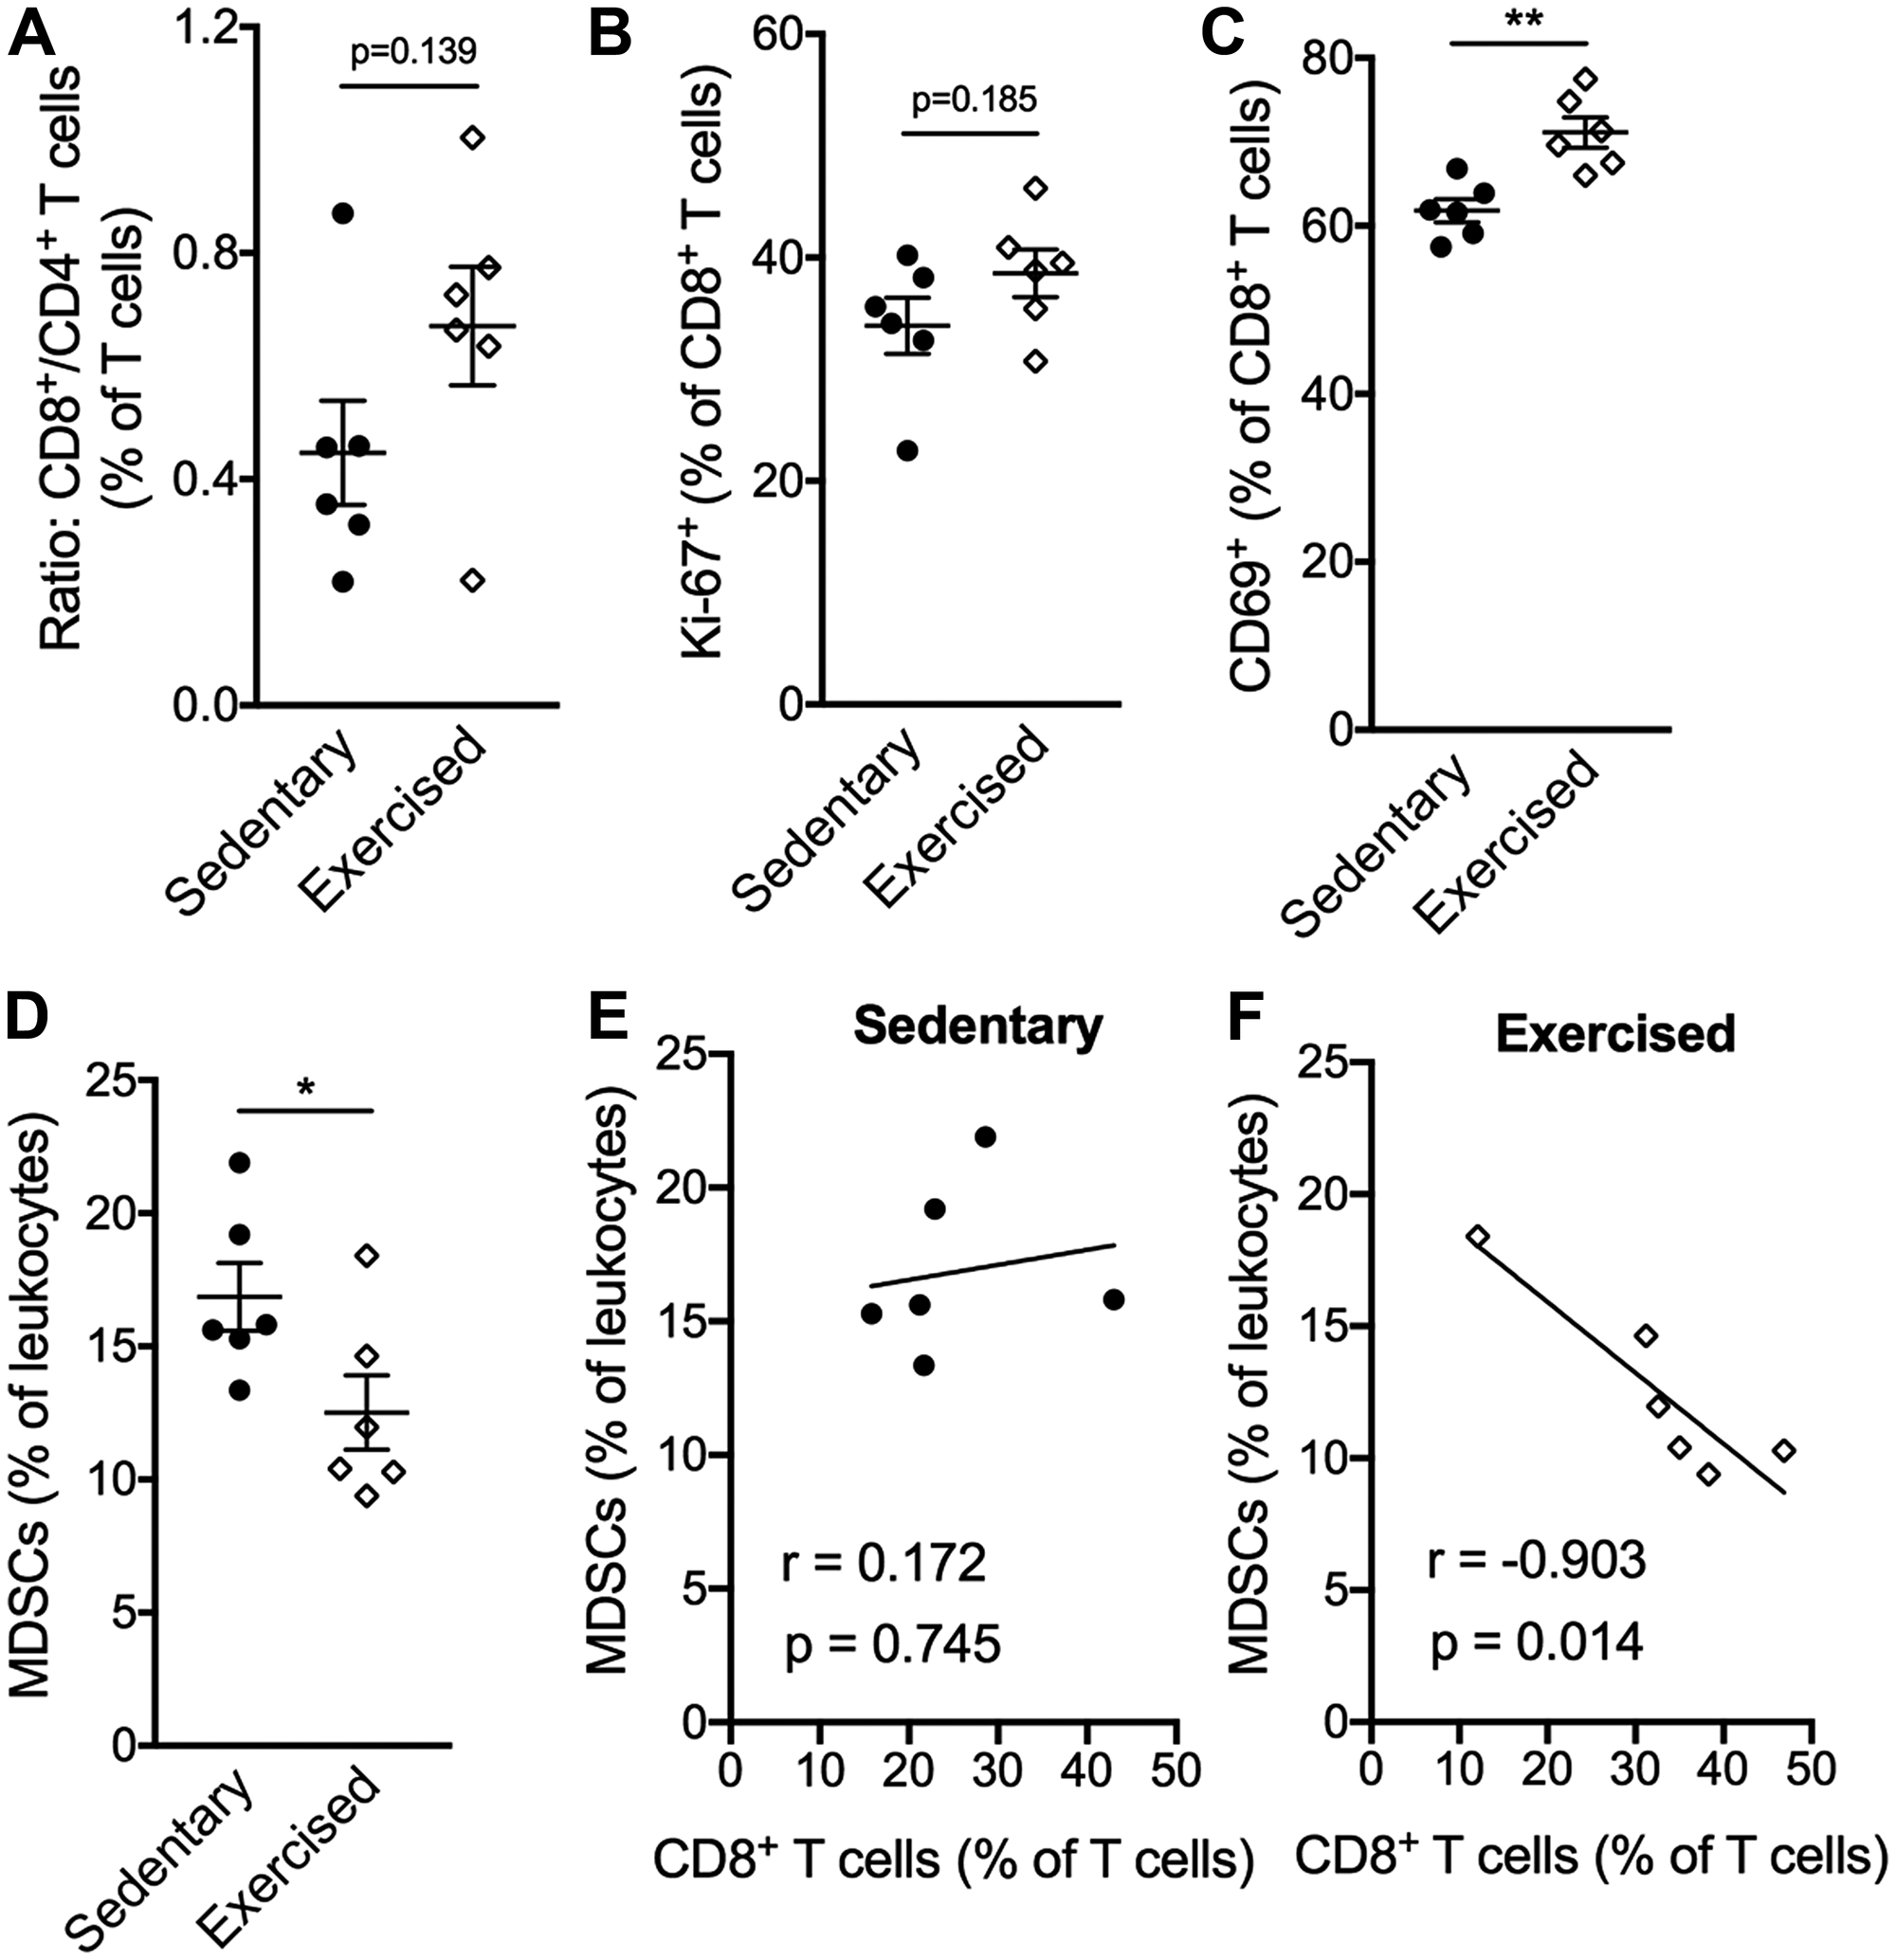 Exercise training alters the compostion of intratumoral leukocytes favoring CD8+ T cells.